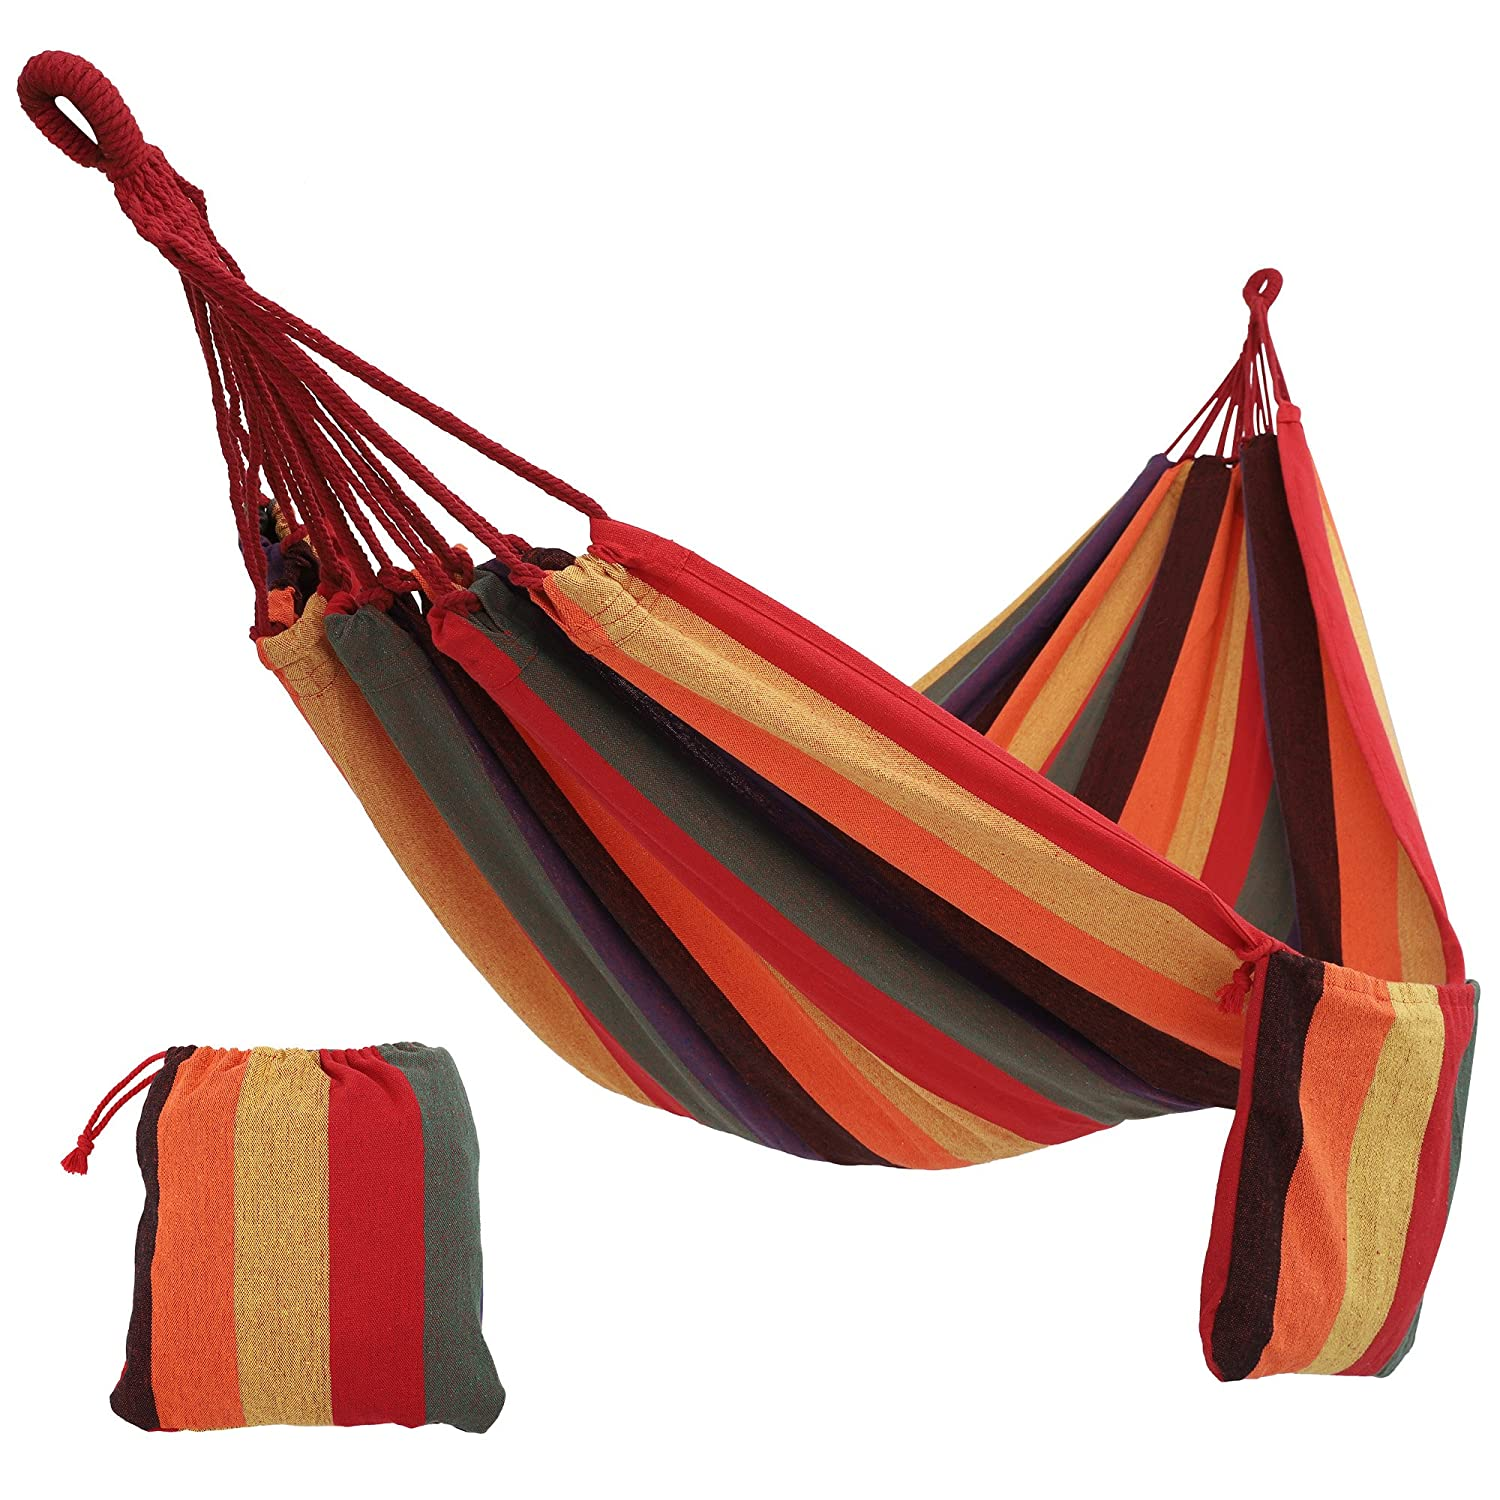 hammocks over camp hate gkimball boundary gear night index can waters woot sucks one i to put don forum in up sleep sleeping hammock them cfm bwca mean say whenever just t a